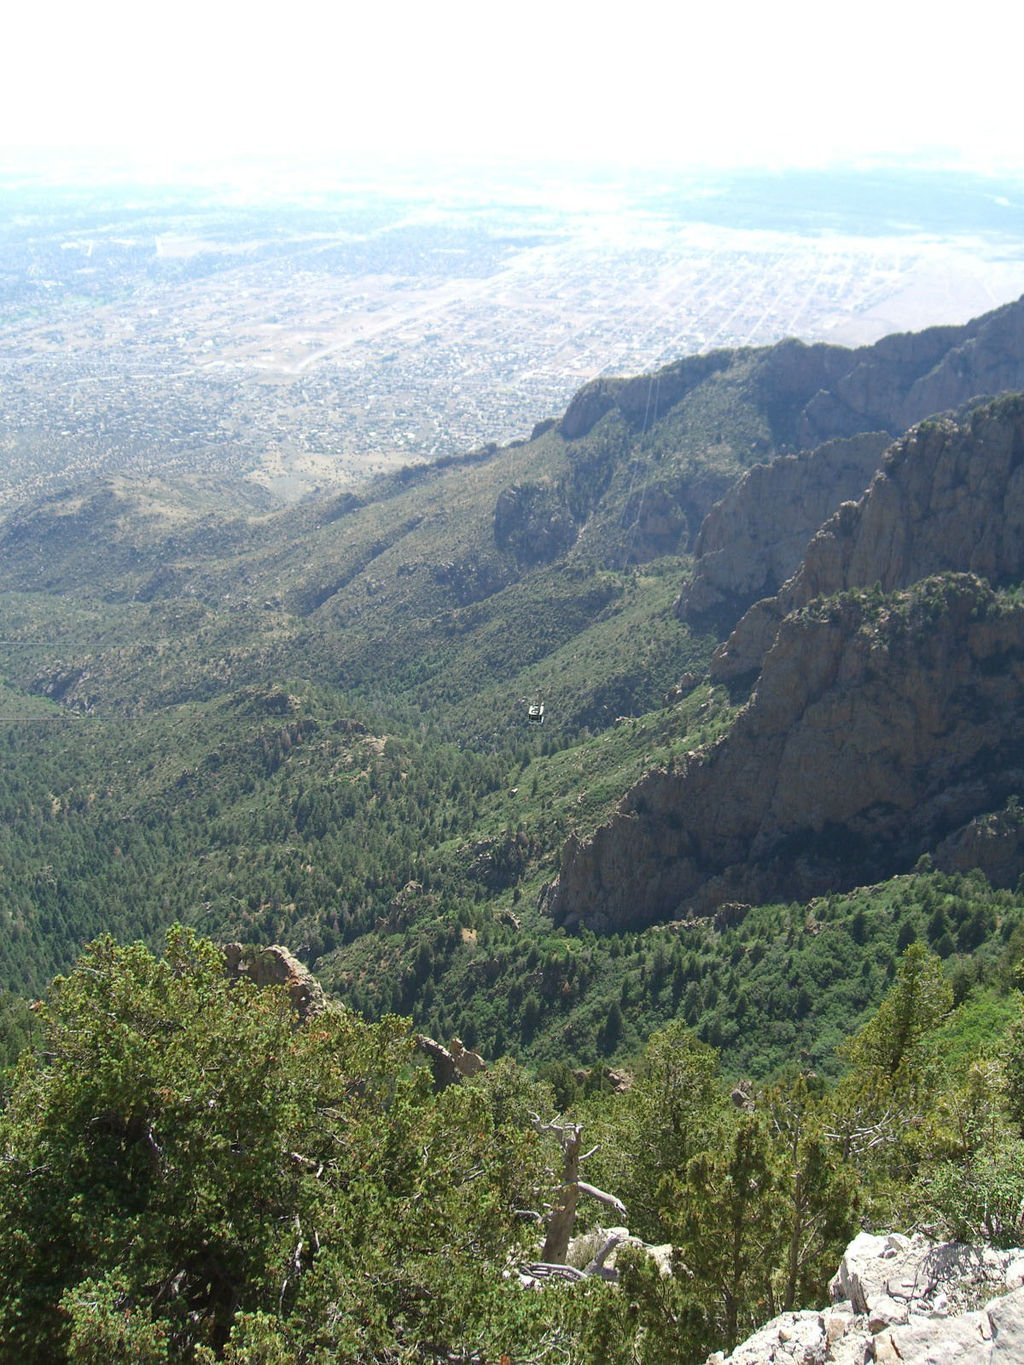 View from the top of Sandia Moutain with Albuquerque in the distance.